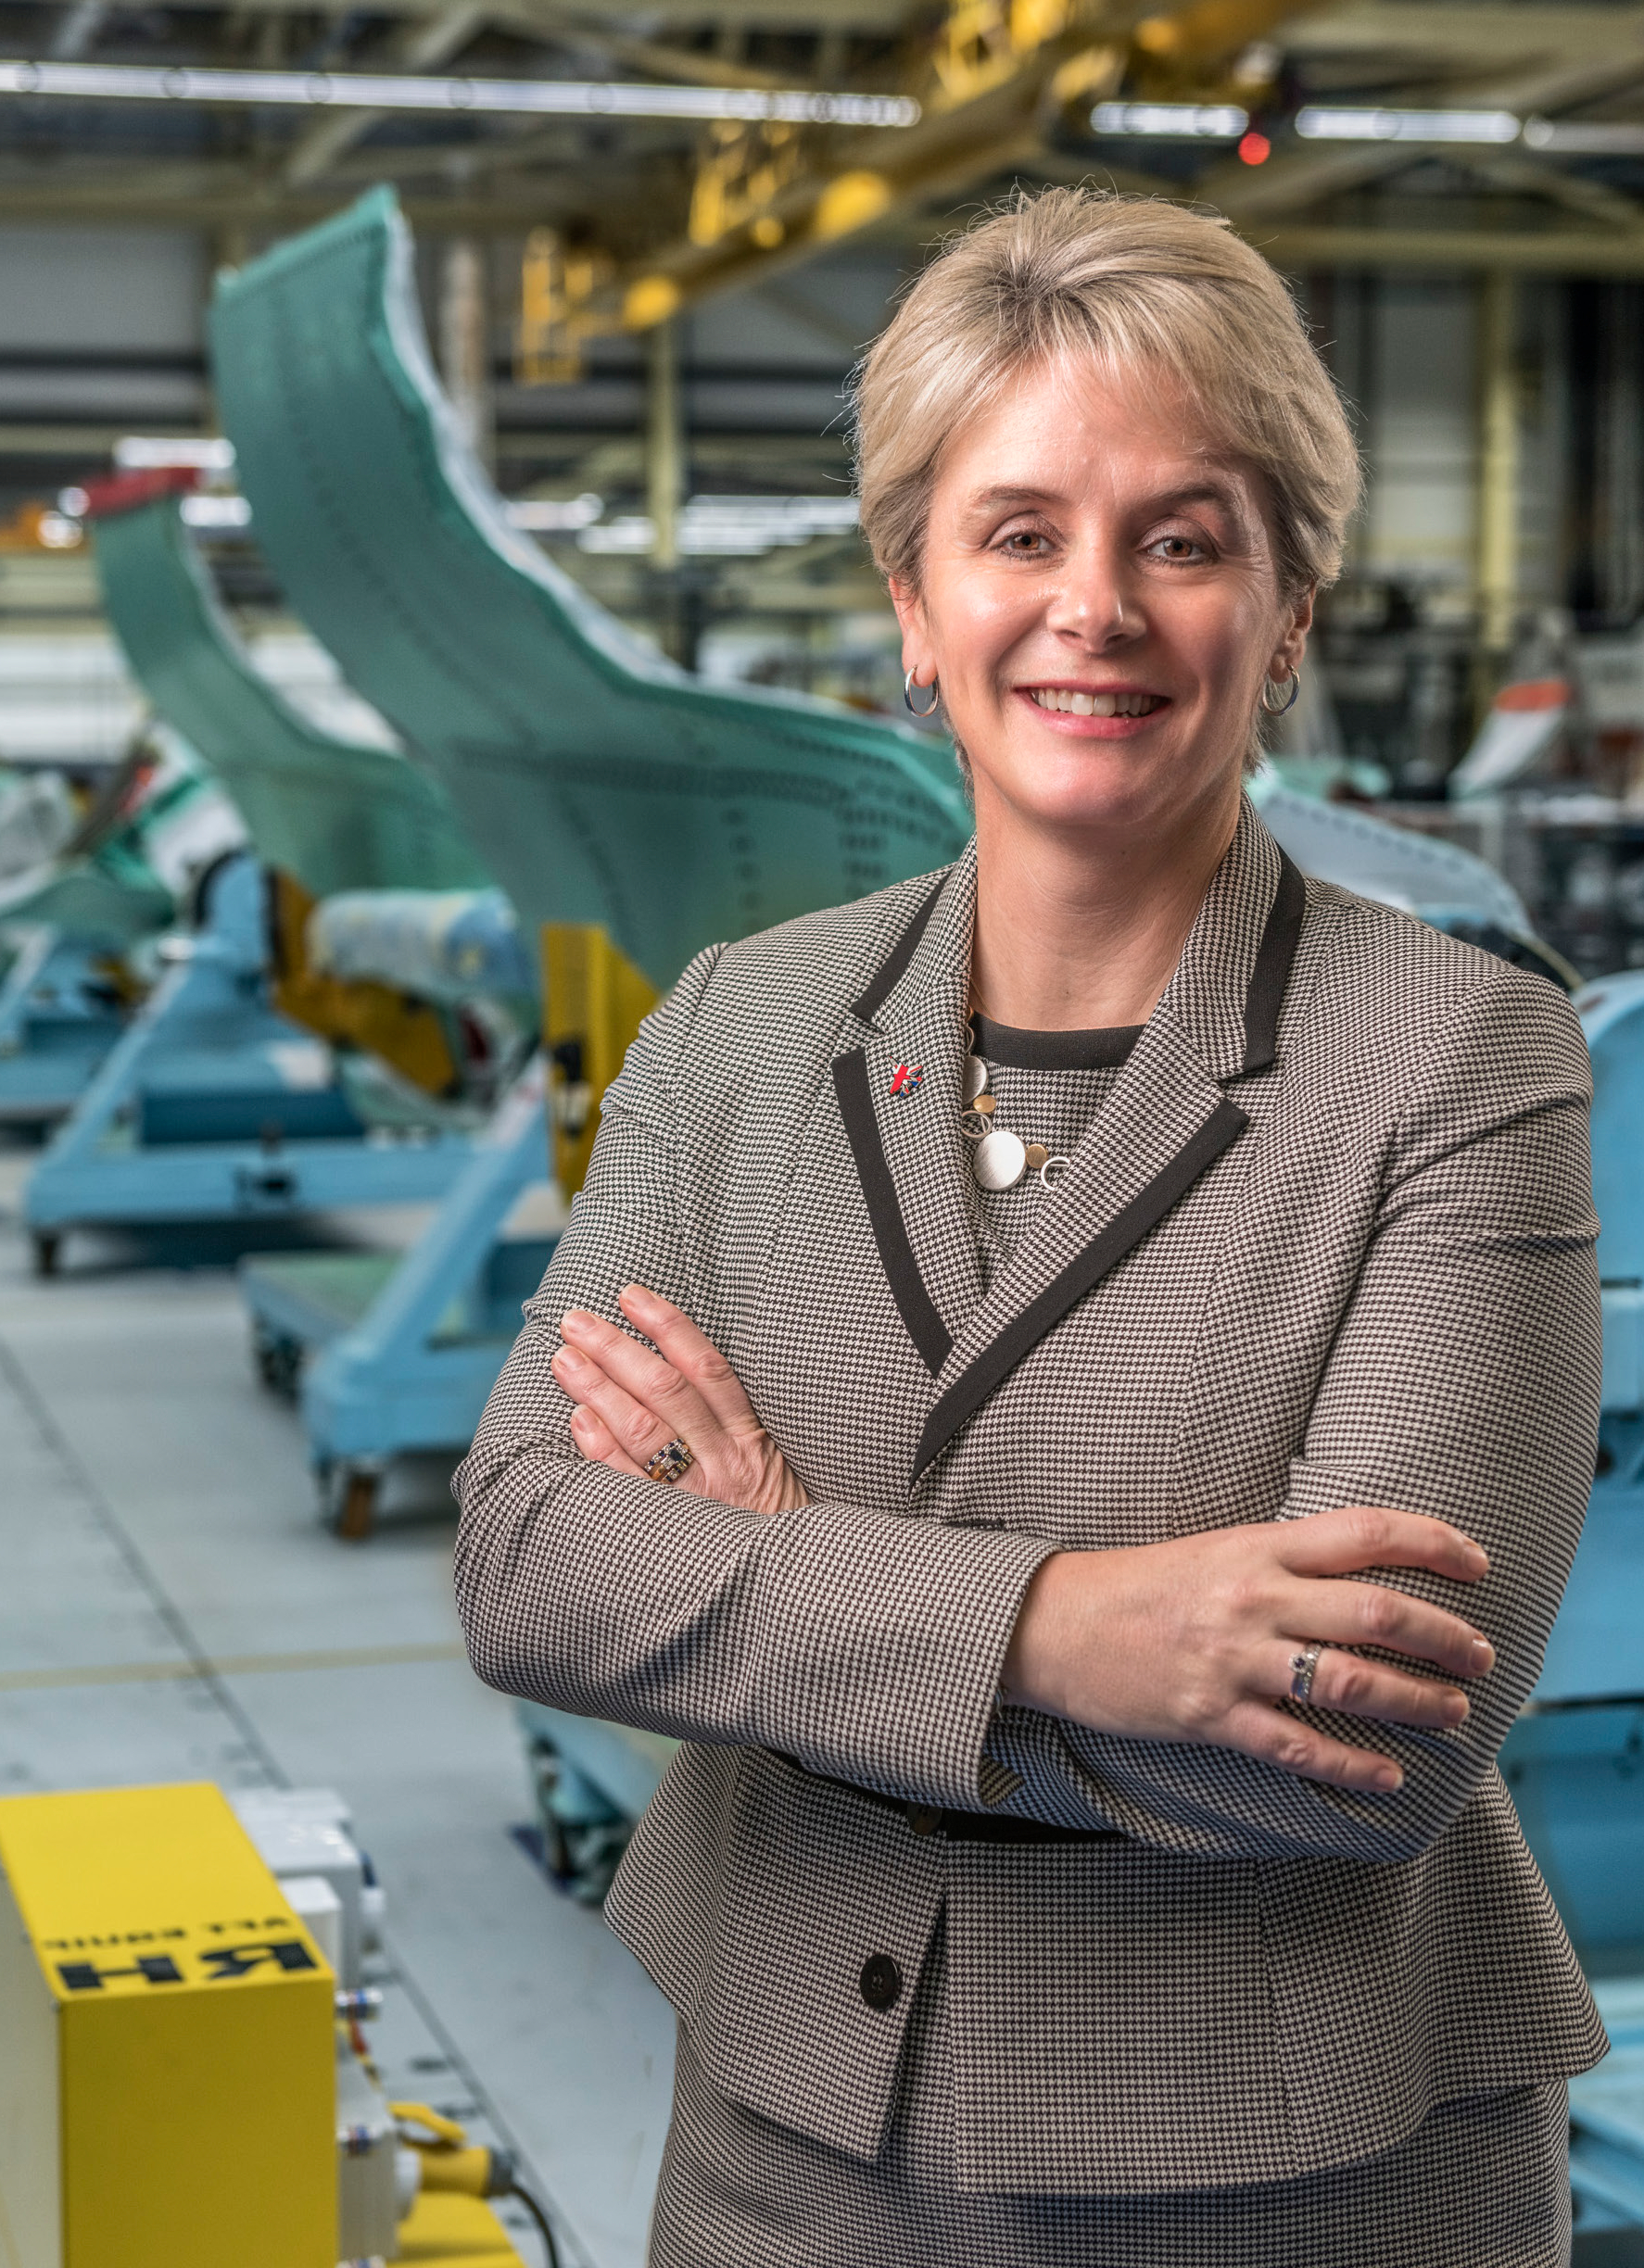 Andrea Thompson, managing director for Europe & International Programmes at BAE Systems, and recently appointed chair of the Made Smarter North West Pilot